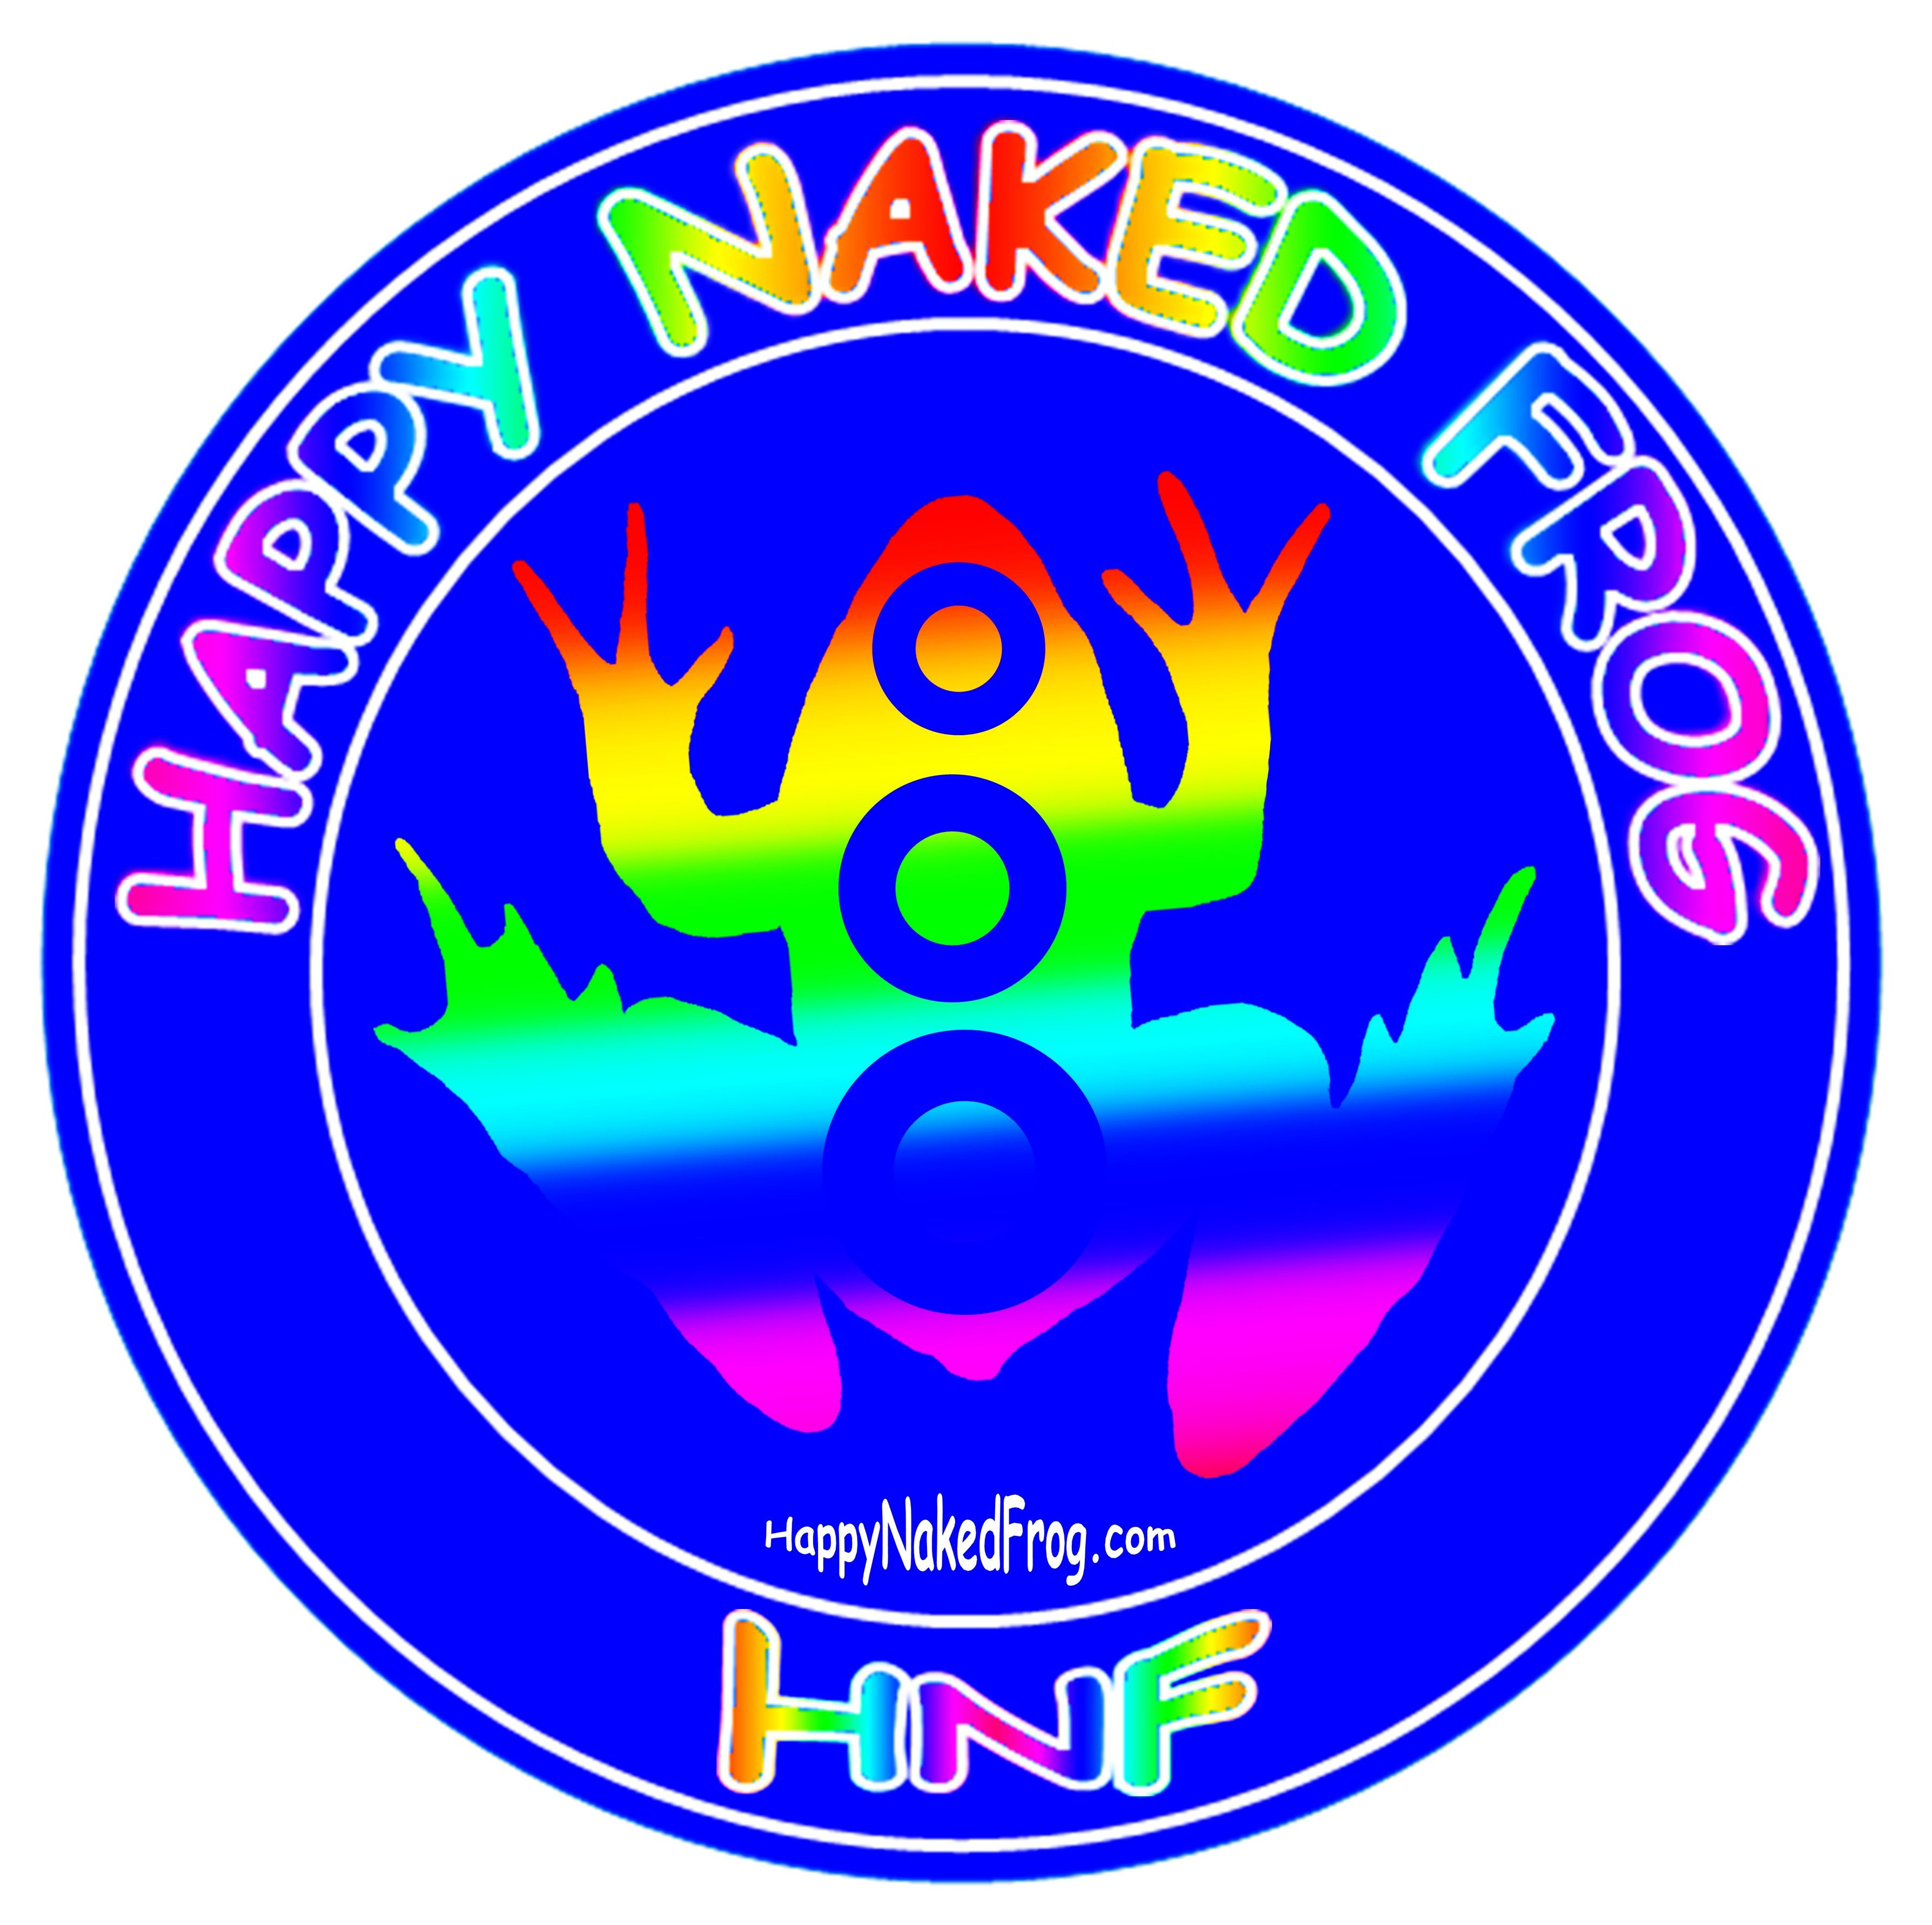 Happy Naked Frog